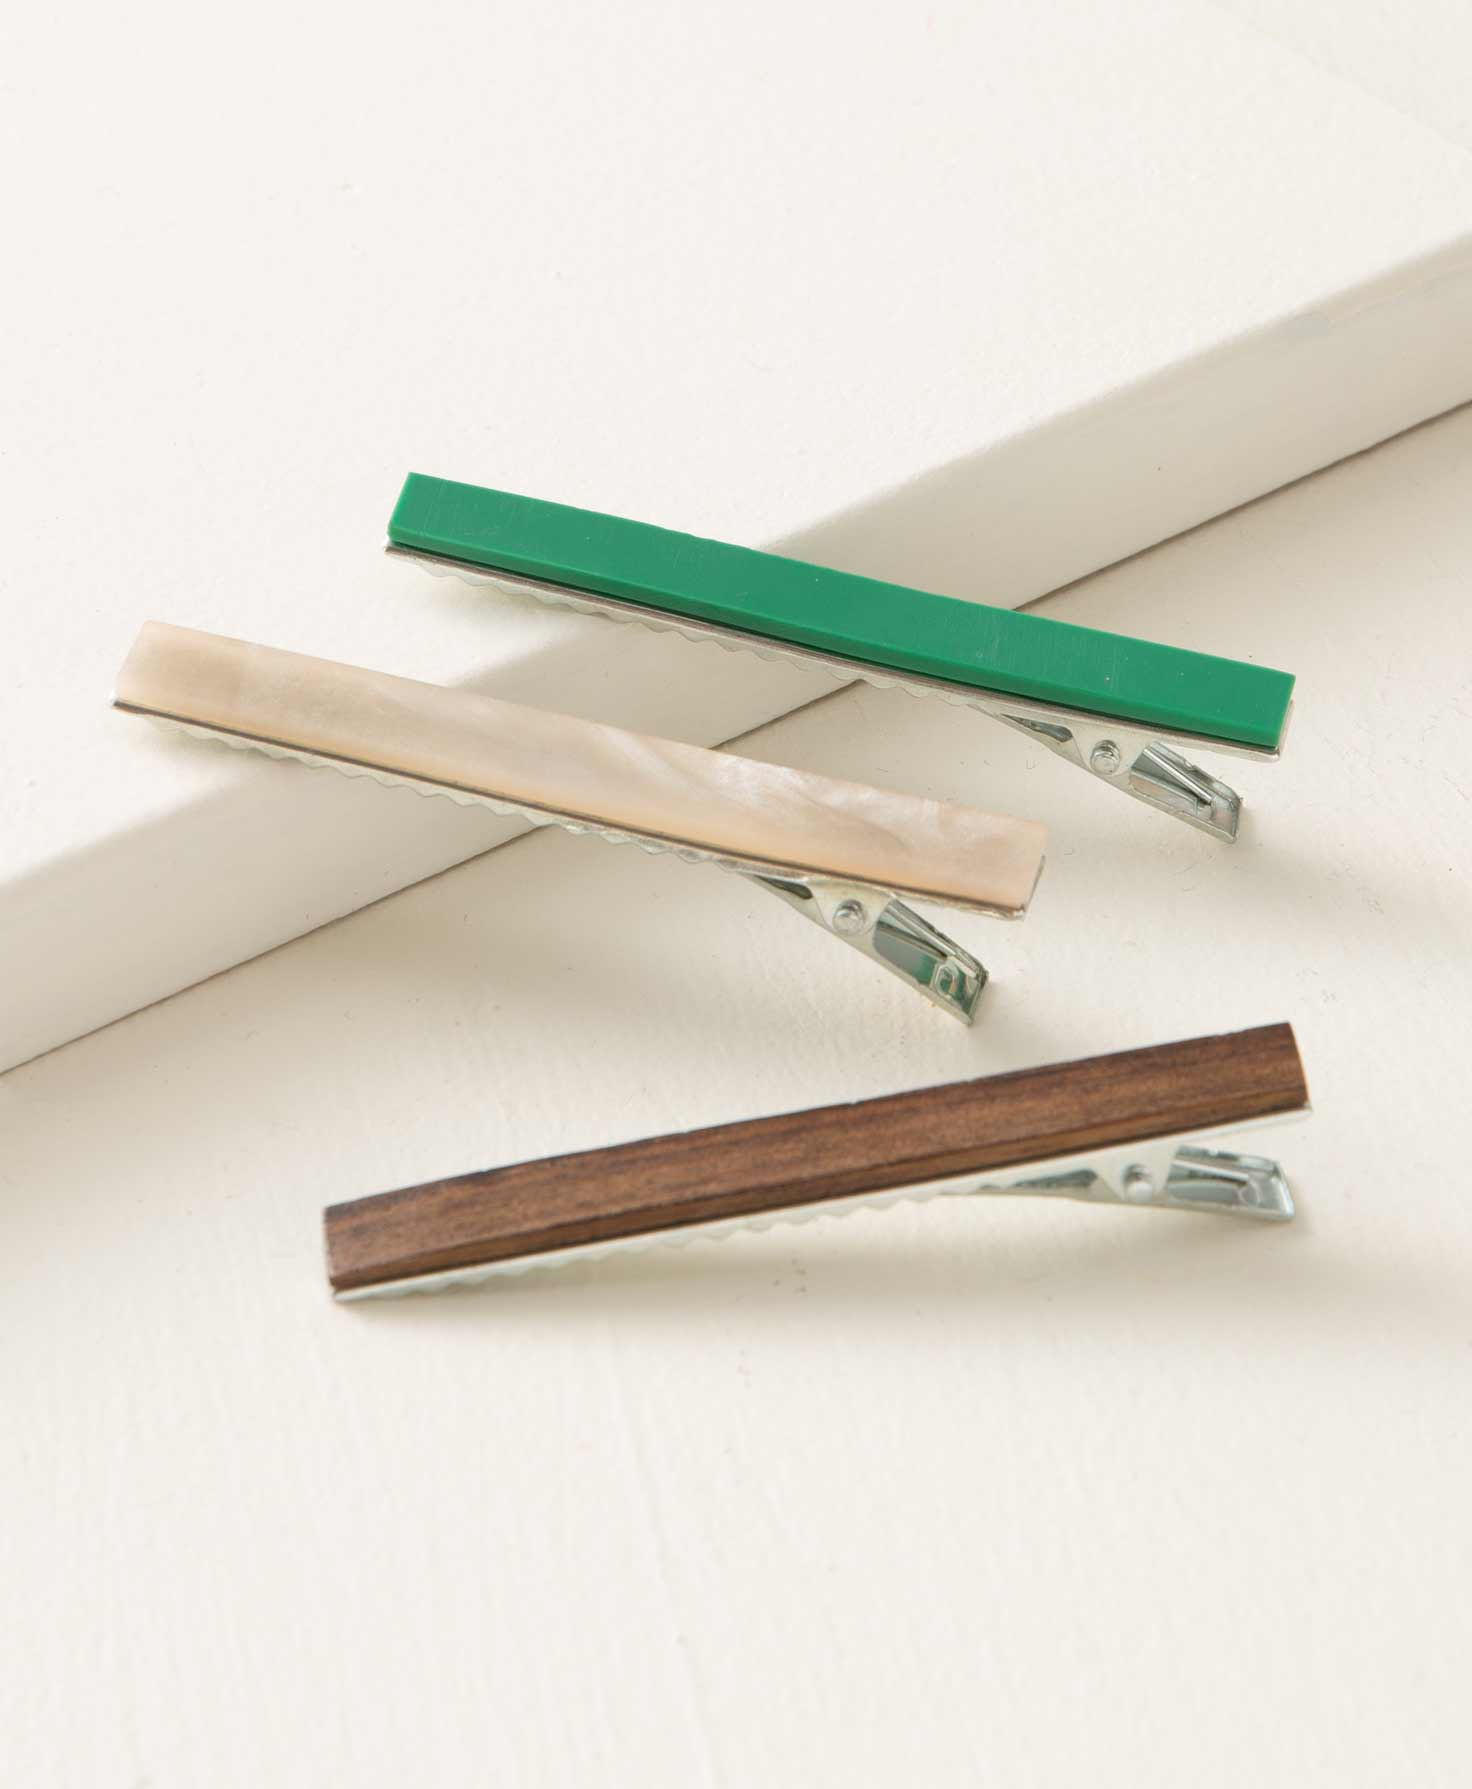 The three hair clips included in the Earth Tone Hair Clips set rest on a white block. The clip hardware is silver metal, with long, narrow, rectangular resin pieces affixed to them. One clip features a matte, jade resin. The second features a cream resin with a pattern that resembles mother-of-pearl. The third features a dark wood grain coated in glossy resin.